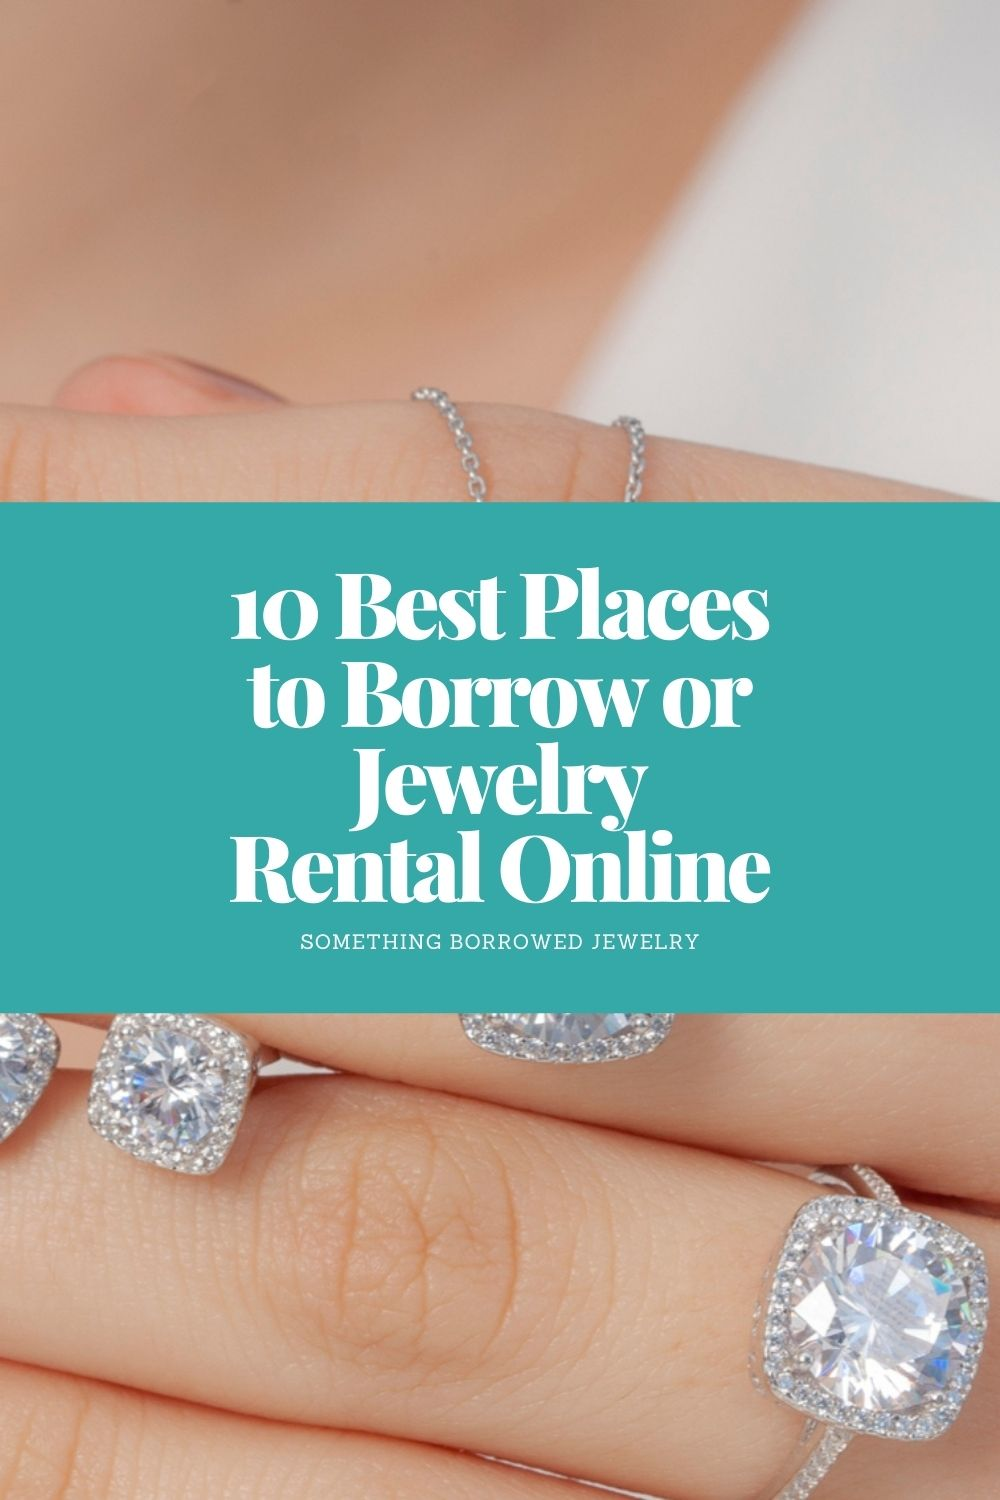 10 Best Places to Borrow or Jewelry Rental Online pin 2